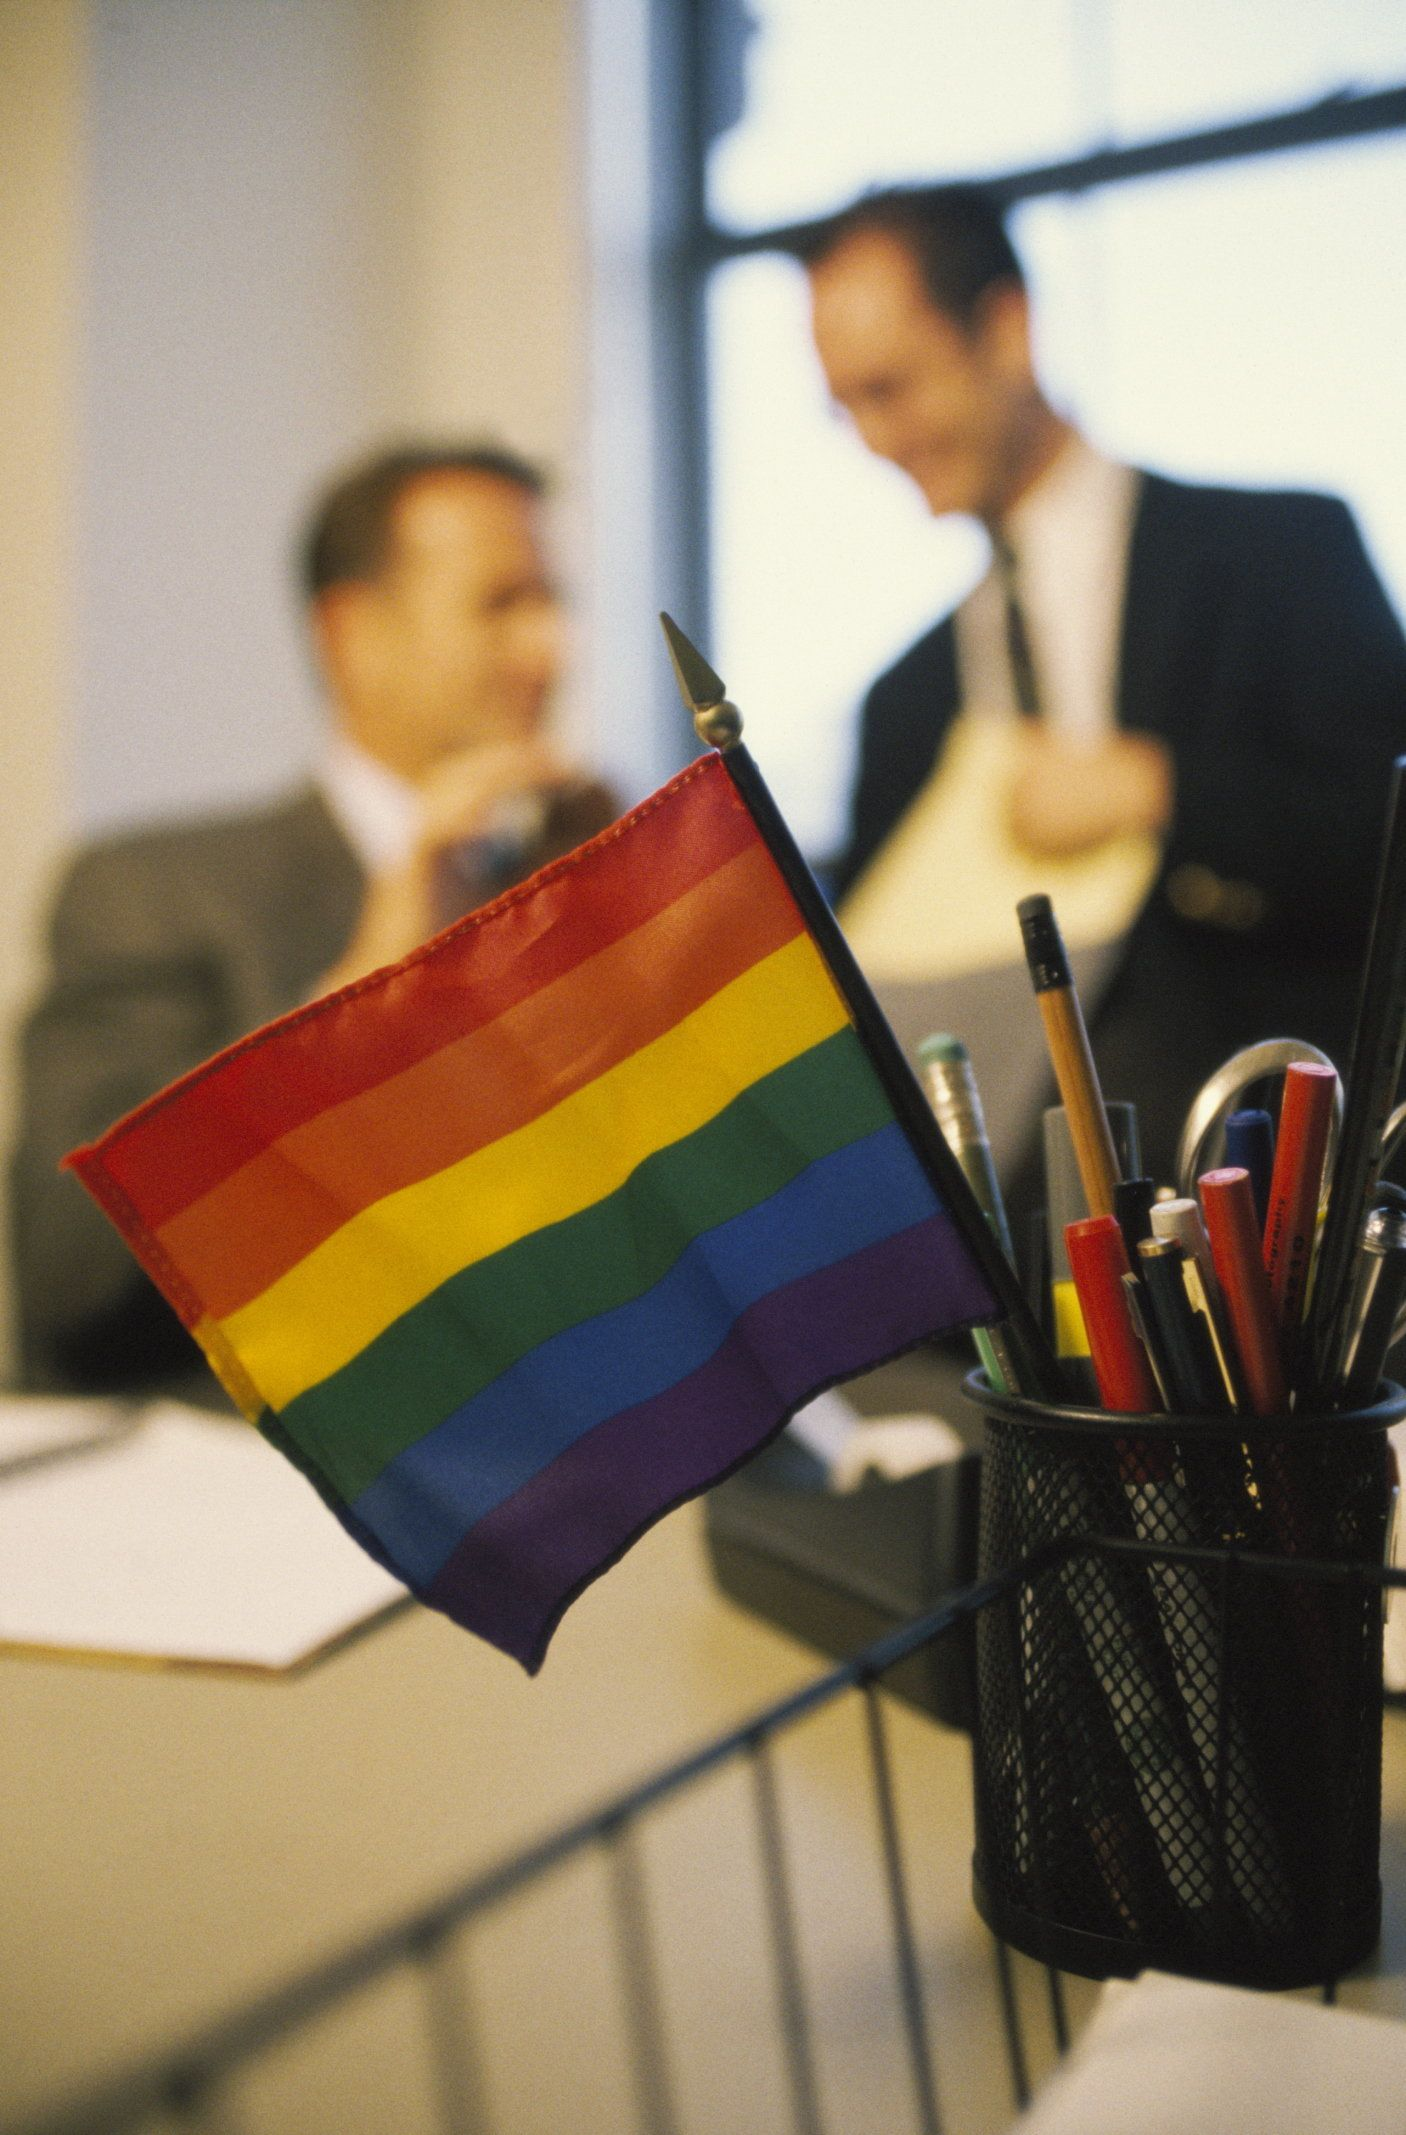 """Researchers noted that31 U.S. states still lack """"clear, fully-inclusive nondiscrimination protections"""" for"""